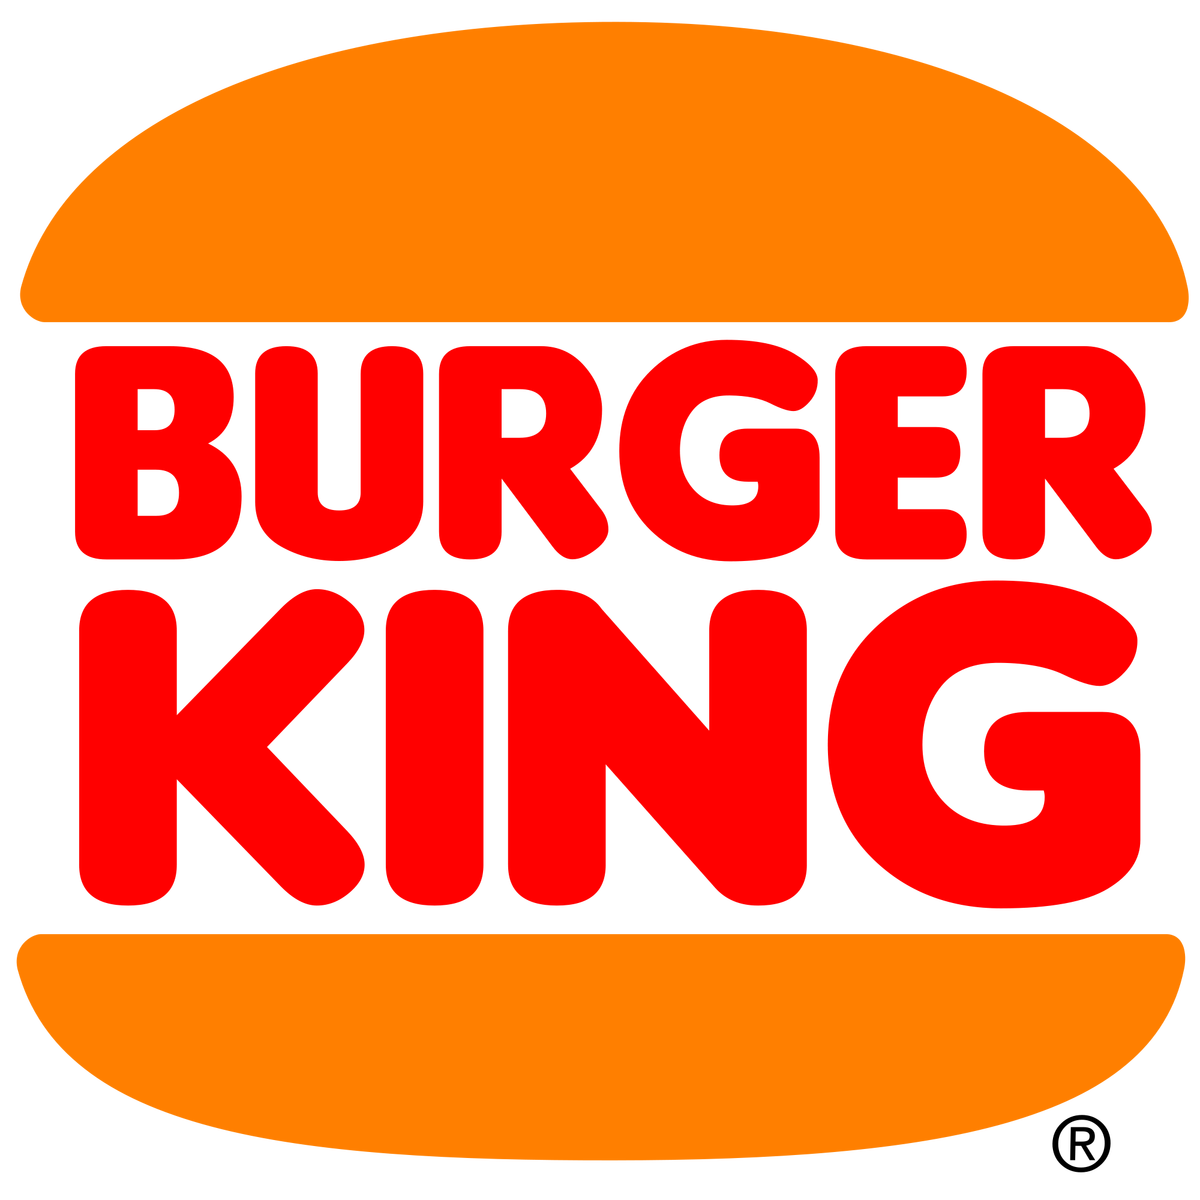 King Hamburger Restaurant Burger Logo The PNG Image